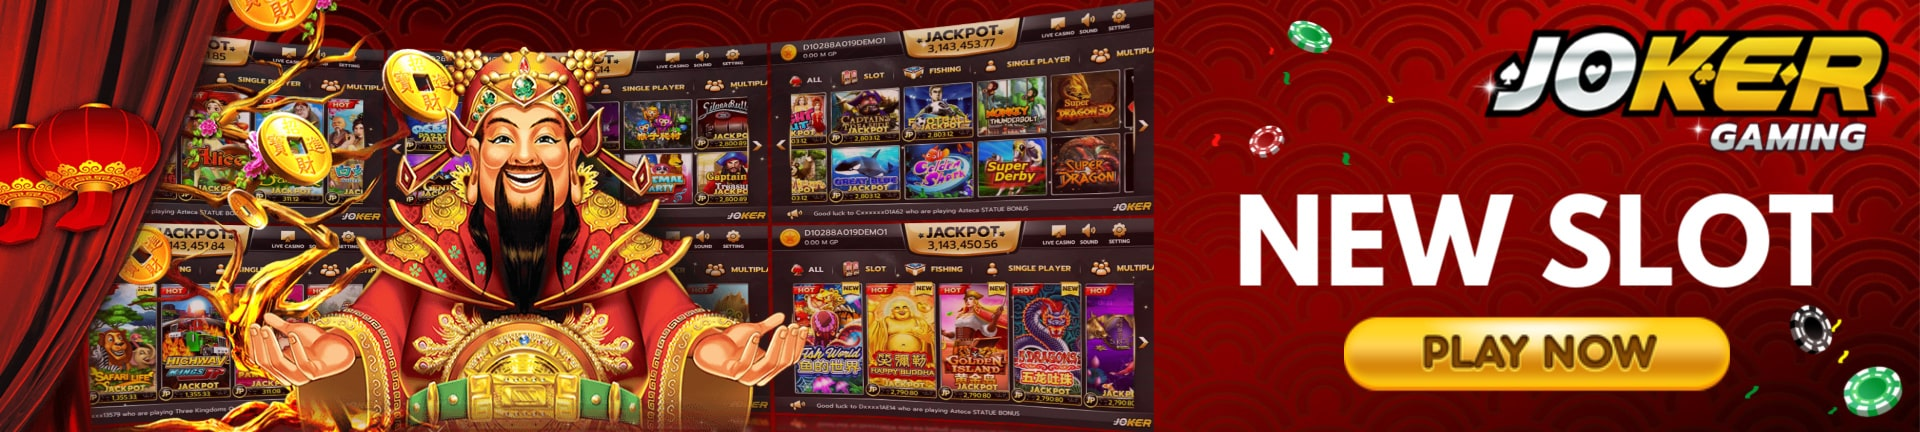 daftar joker123 slot gaming indonesia